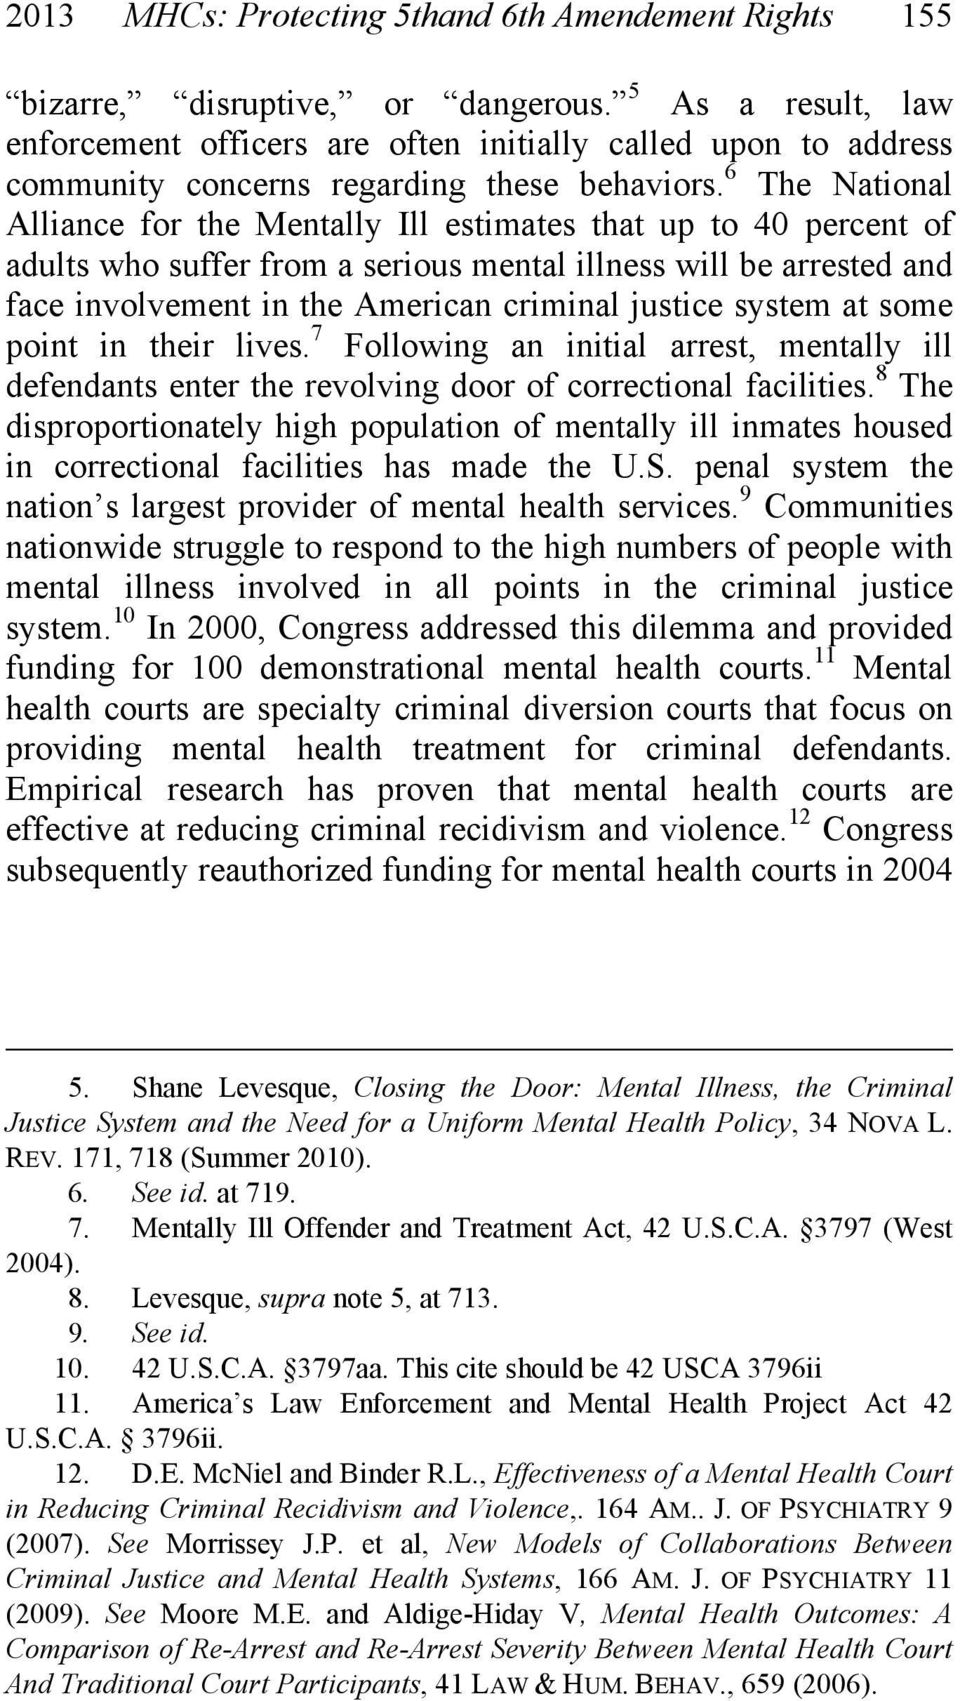 6 The National Alliance for the Mentally Ill estimates that up to 40 percent of adults who suffer from a serious mental illness will be arrested and face involvement in the American criminal justice